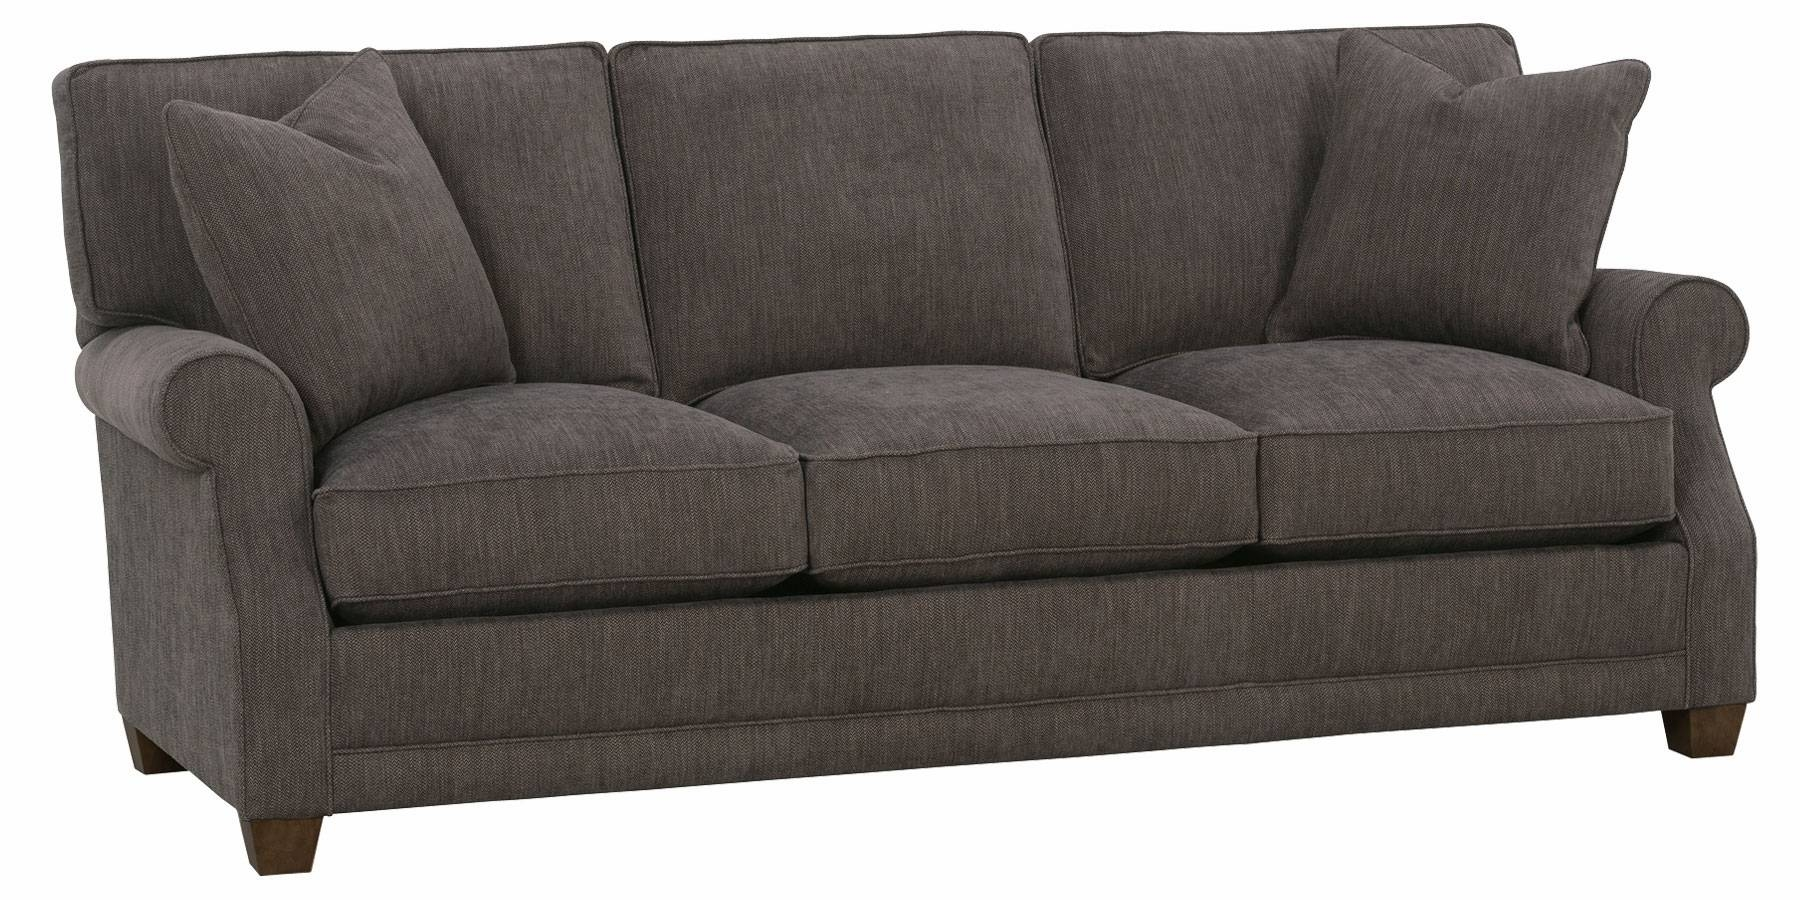 Sofas Tampa within Sofas Tampa (Image 21 of 25)